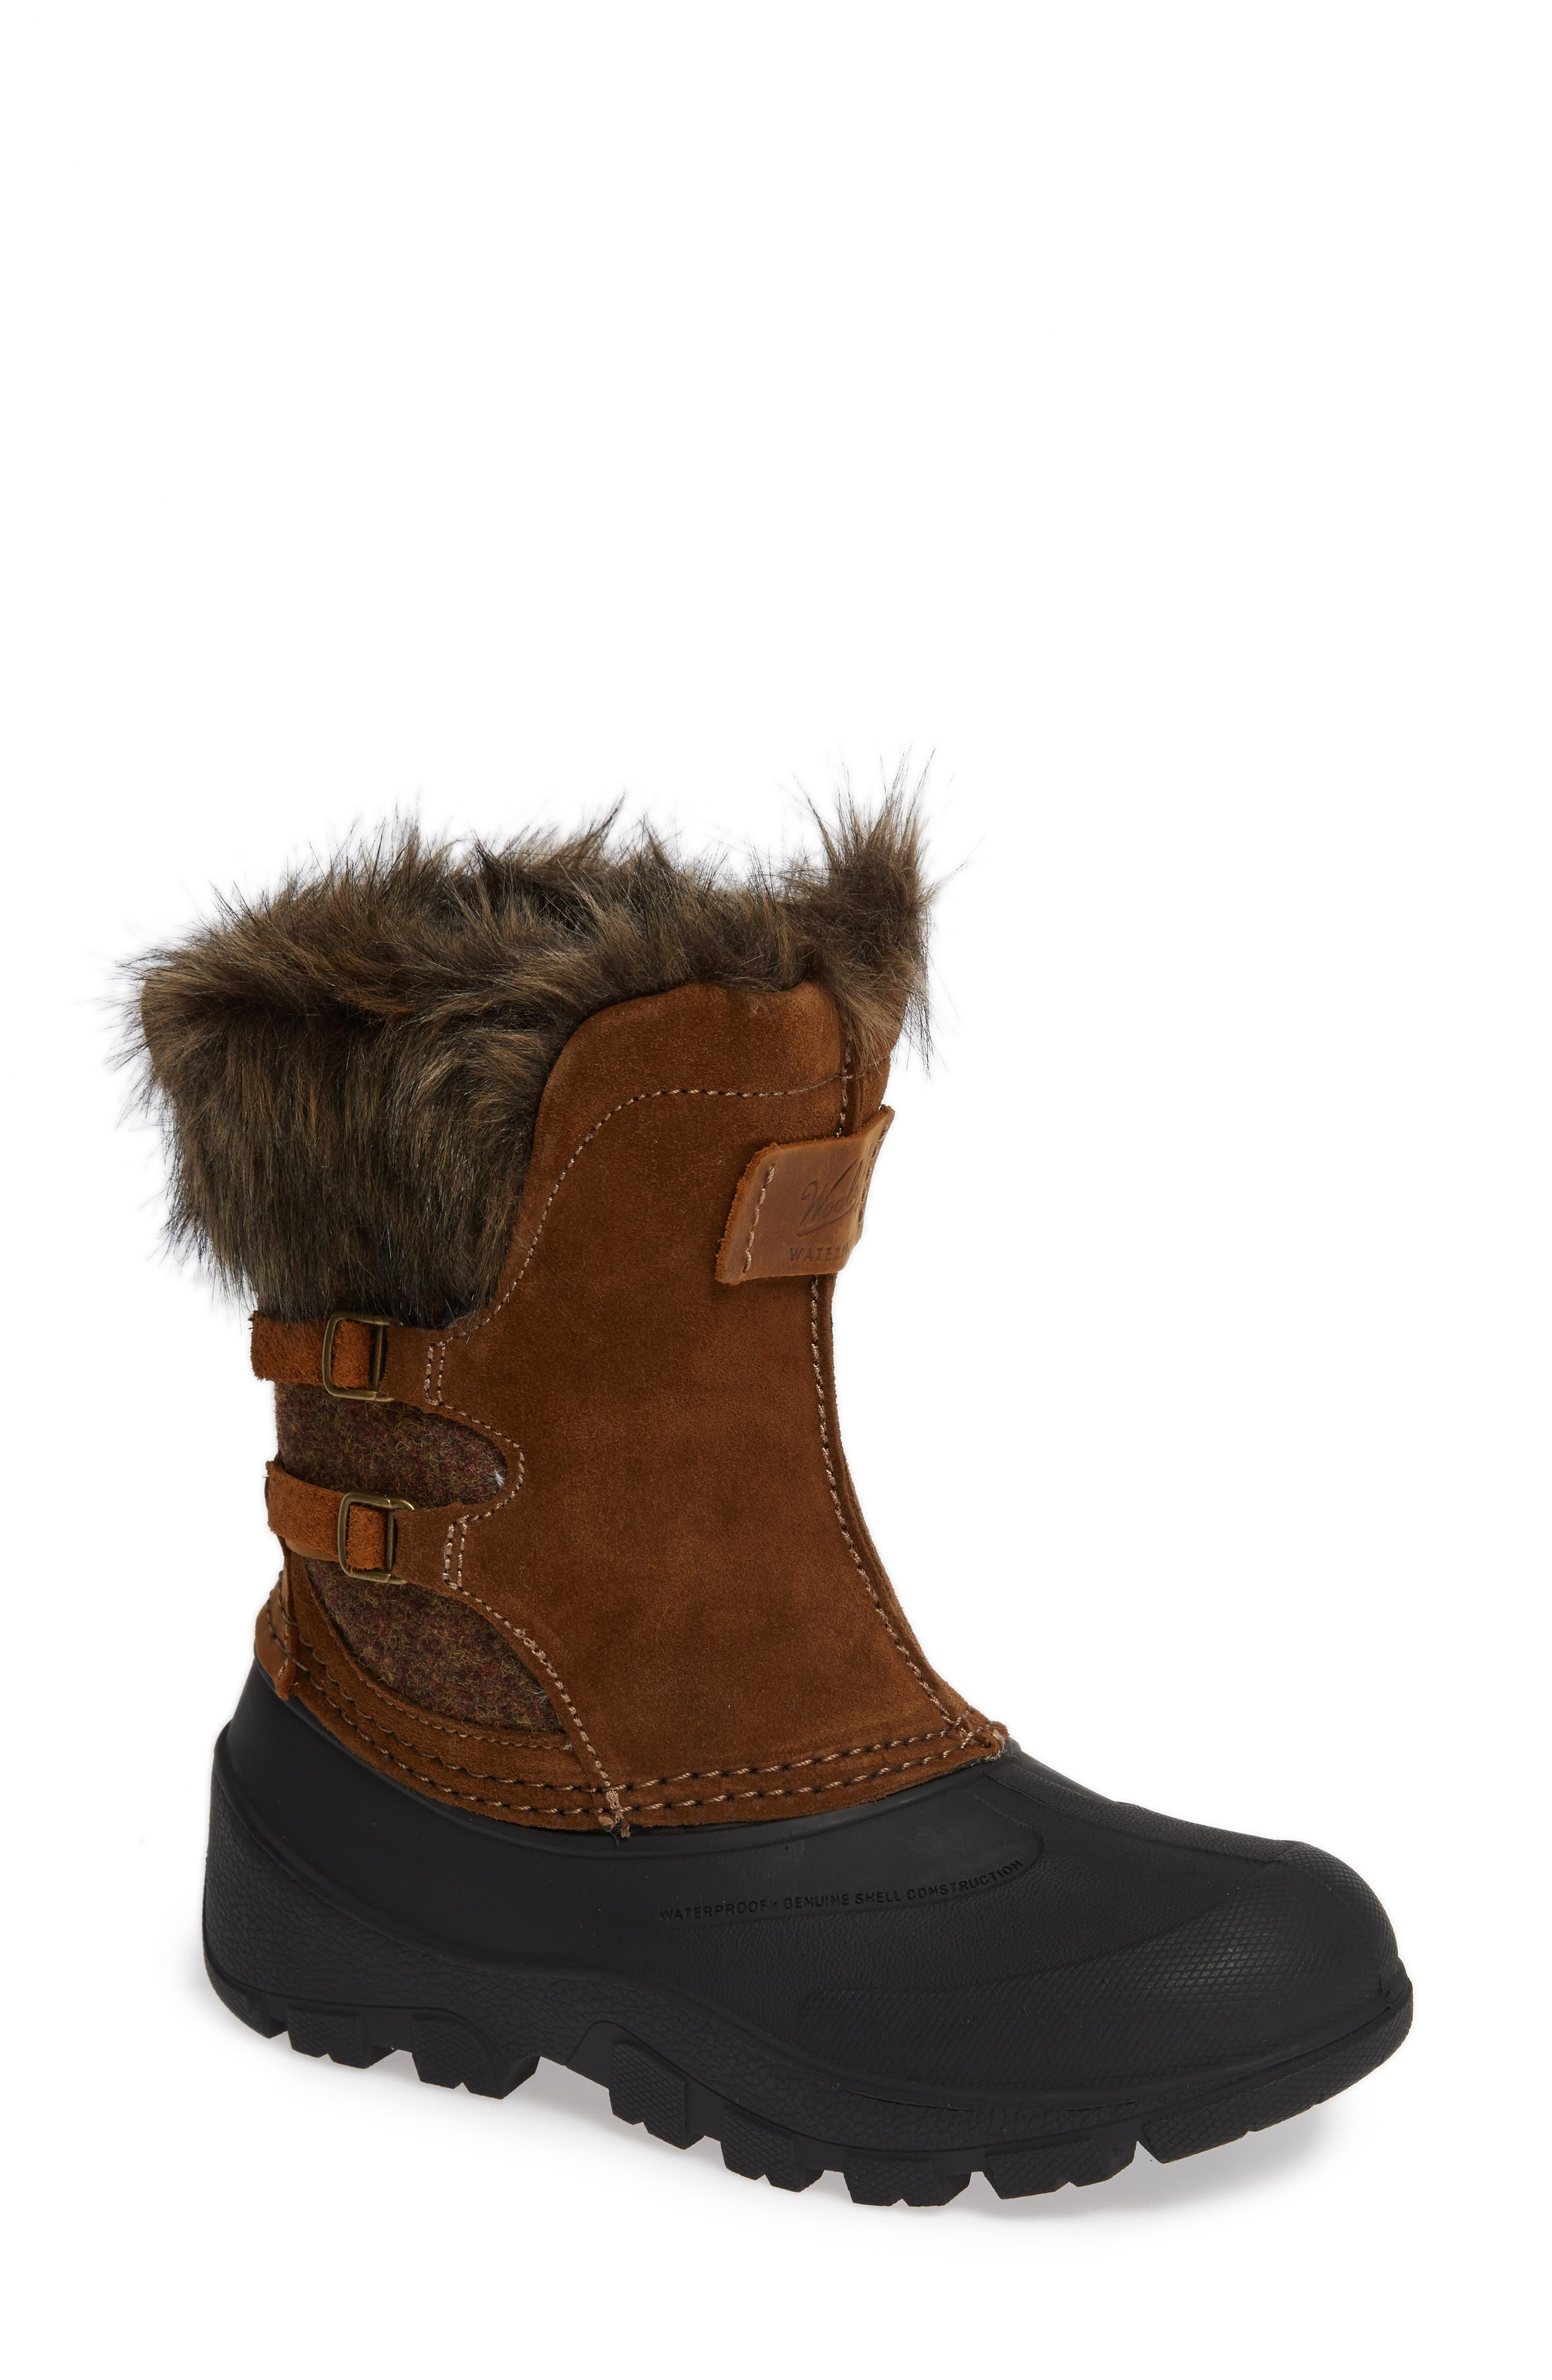 Icecat II Fully Woolly Waterproof Insulated Winter Boot,                         Main,                         color, DACHSHUND WOOL